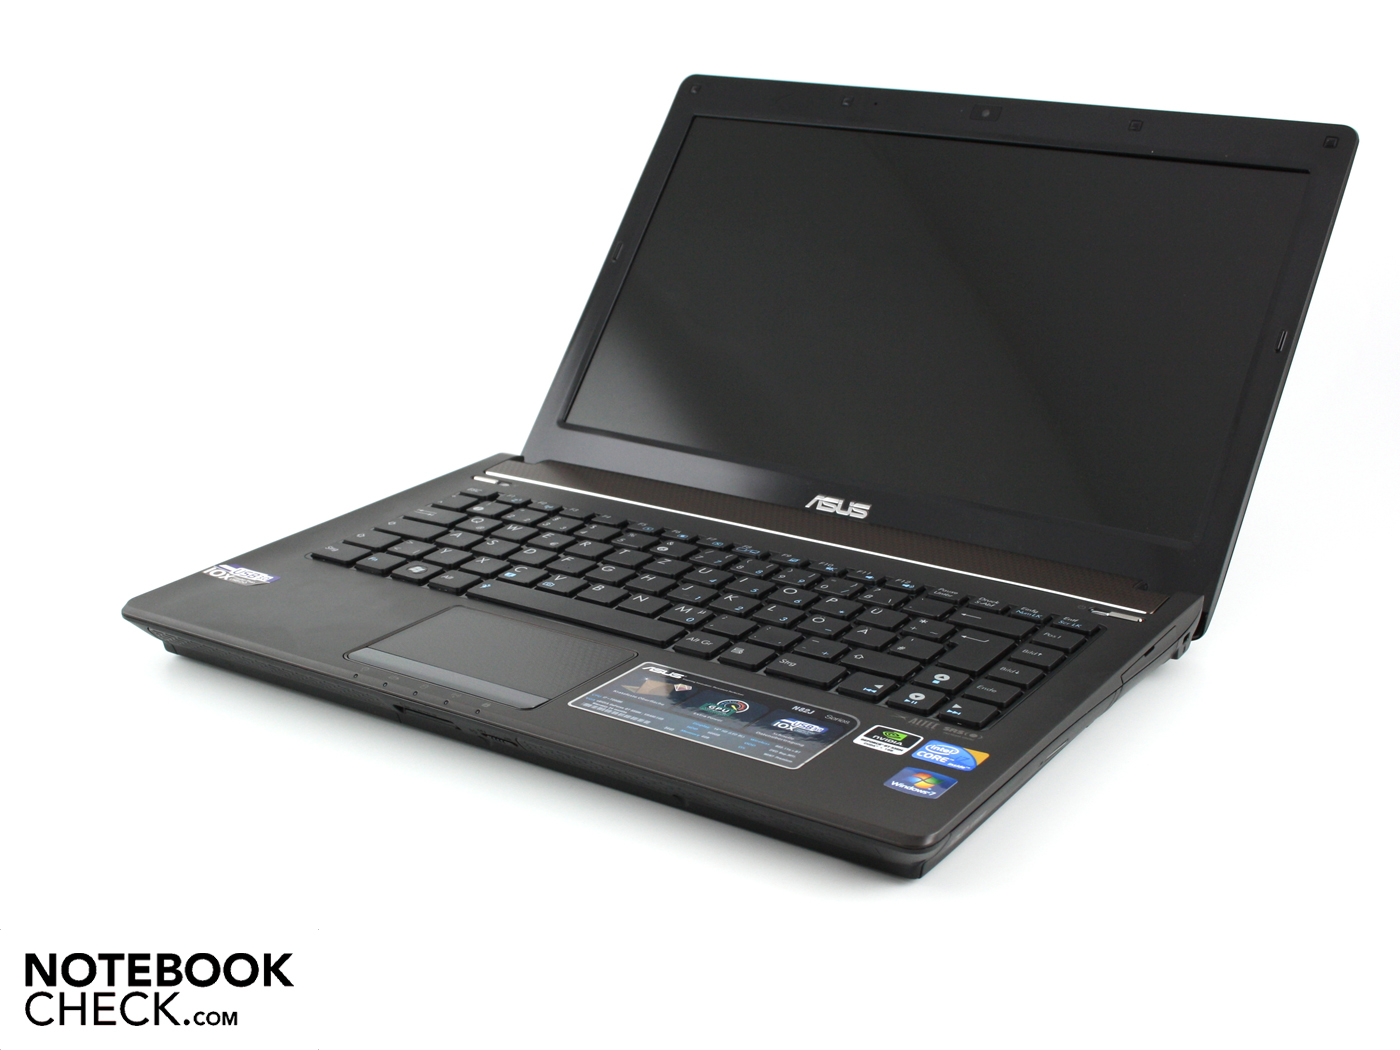 ACER ASPIRE 5745DG NVIDIA STEREO EIS DRIVERS WINDOWS 7